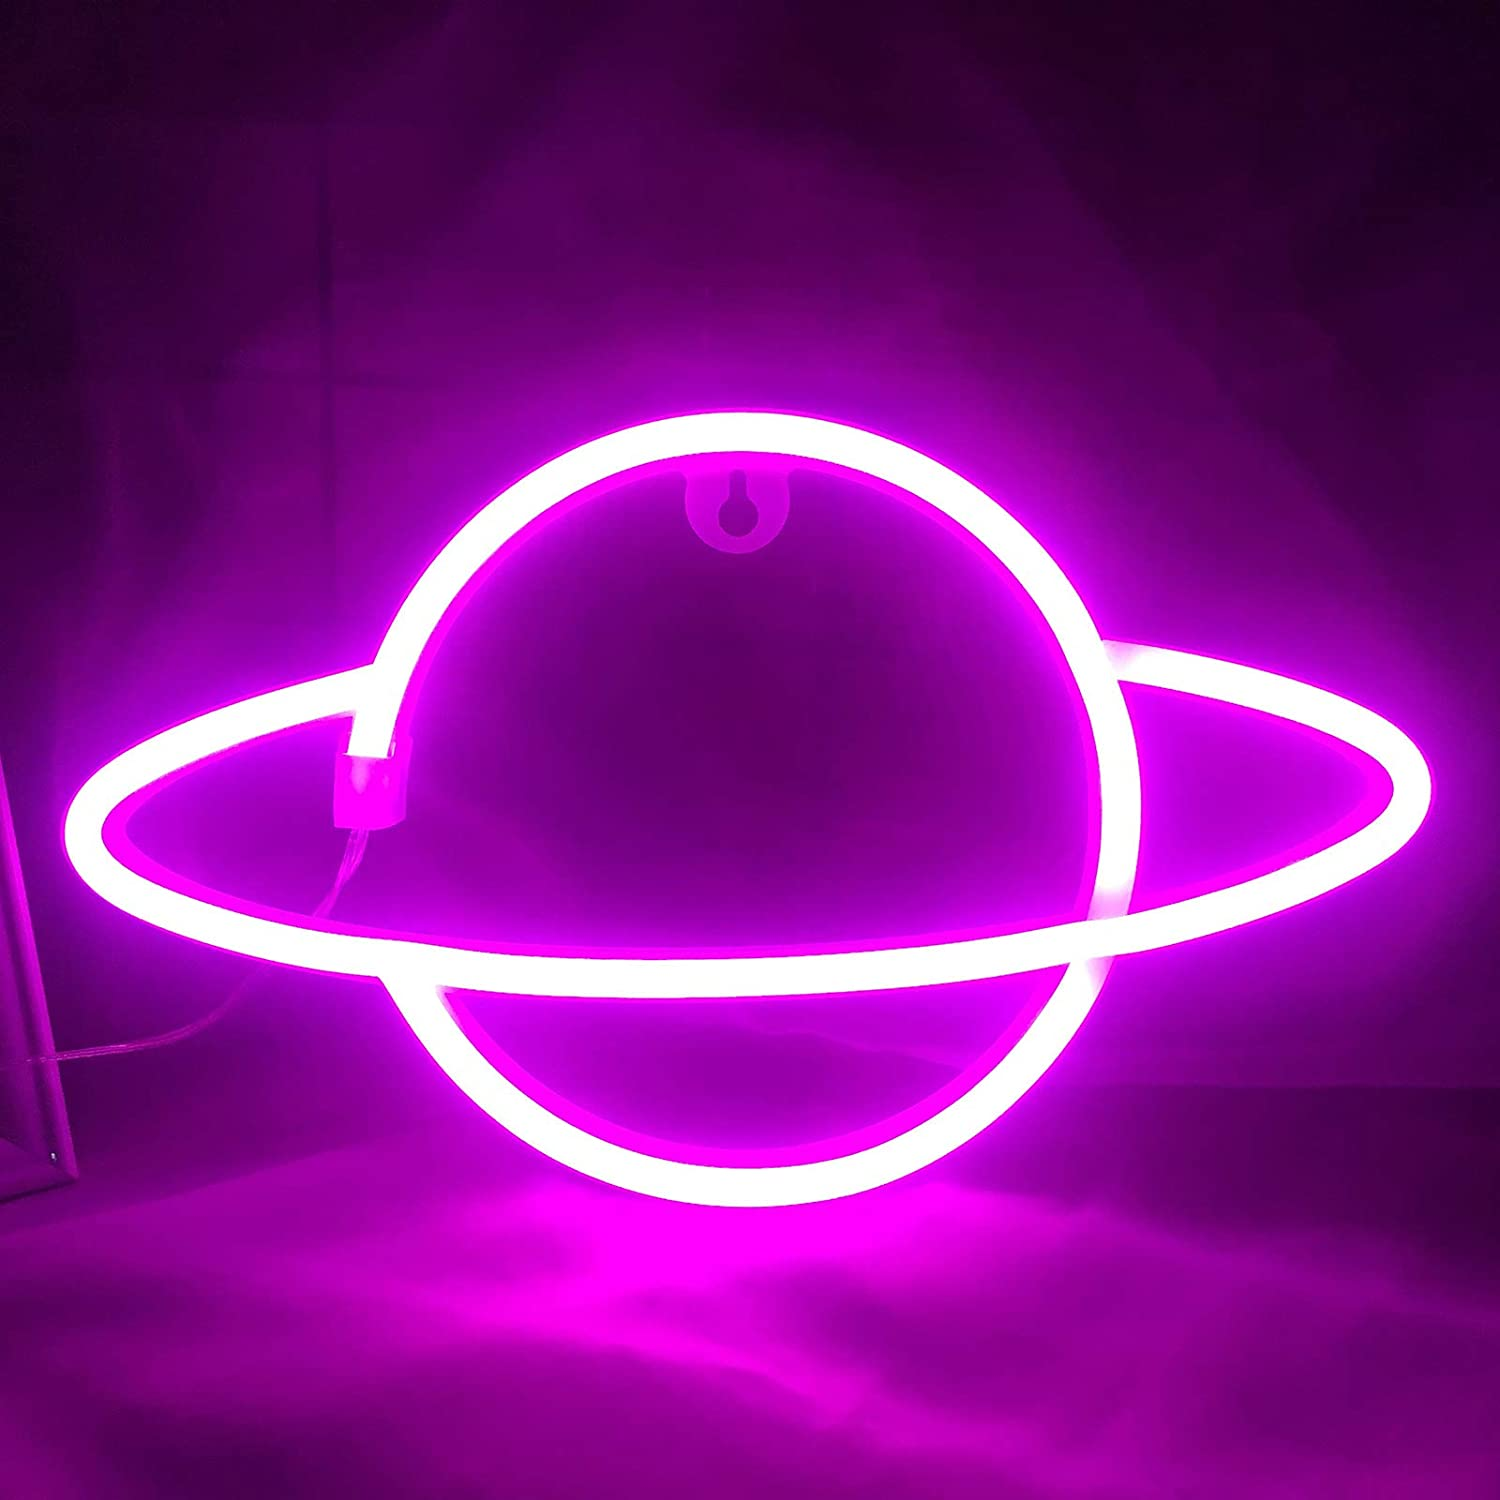 Planet Neon Sign for Wall Decor Light Pink Led Wall Light Battery or USB Operated Kids Room Lamps Planet Neon Signs Light up for Home Kids Room Bar Festive Party Halloween Christmas Festive Decor